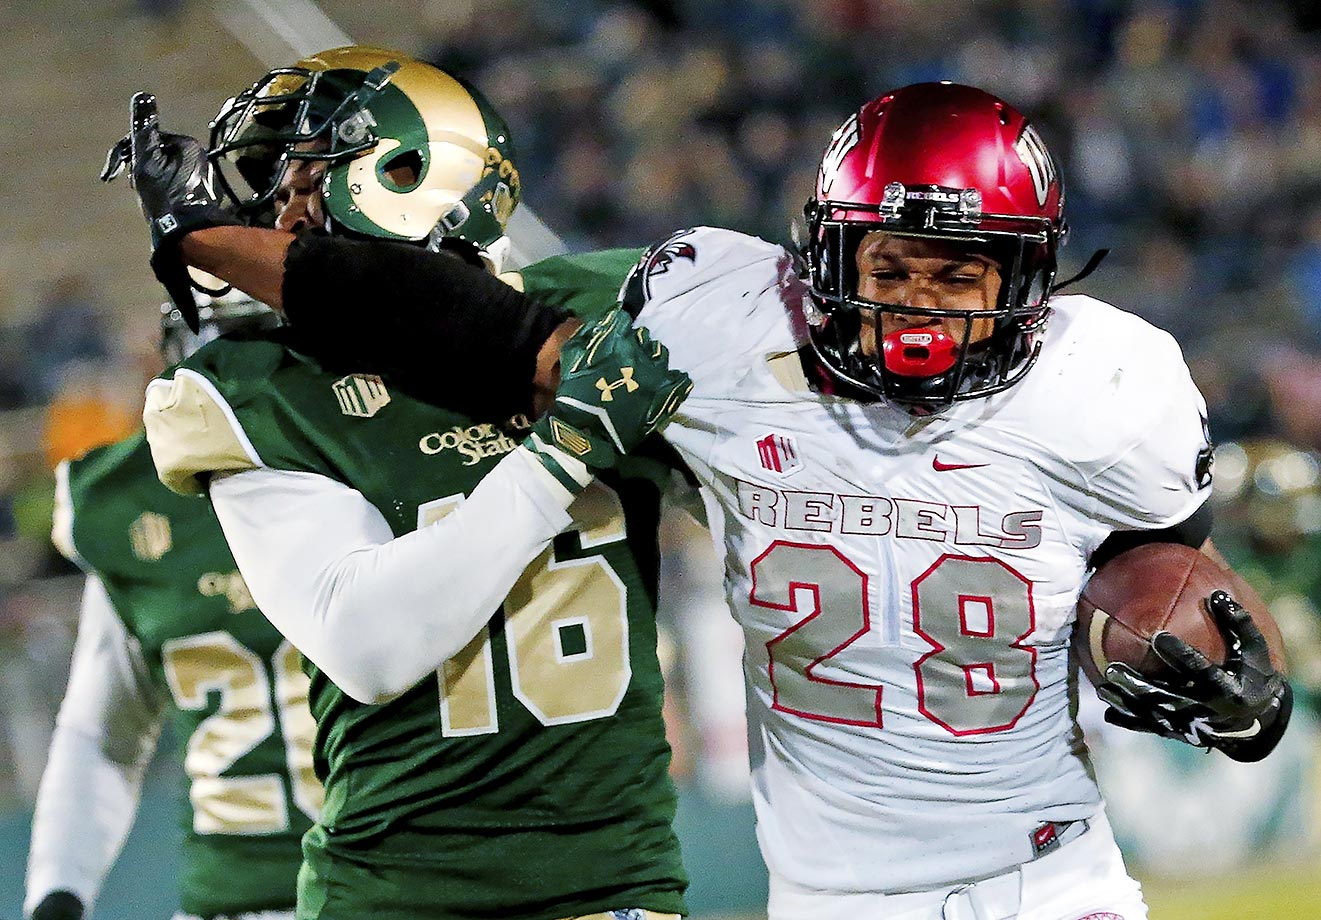 Keith Whitely of UNLV stiff-arms Trent Matthews of Colorado State, drawing a facemask penalty.